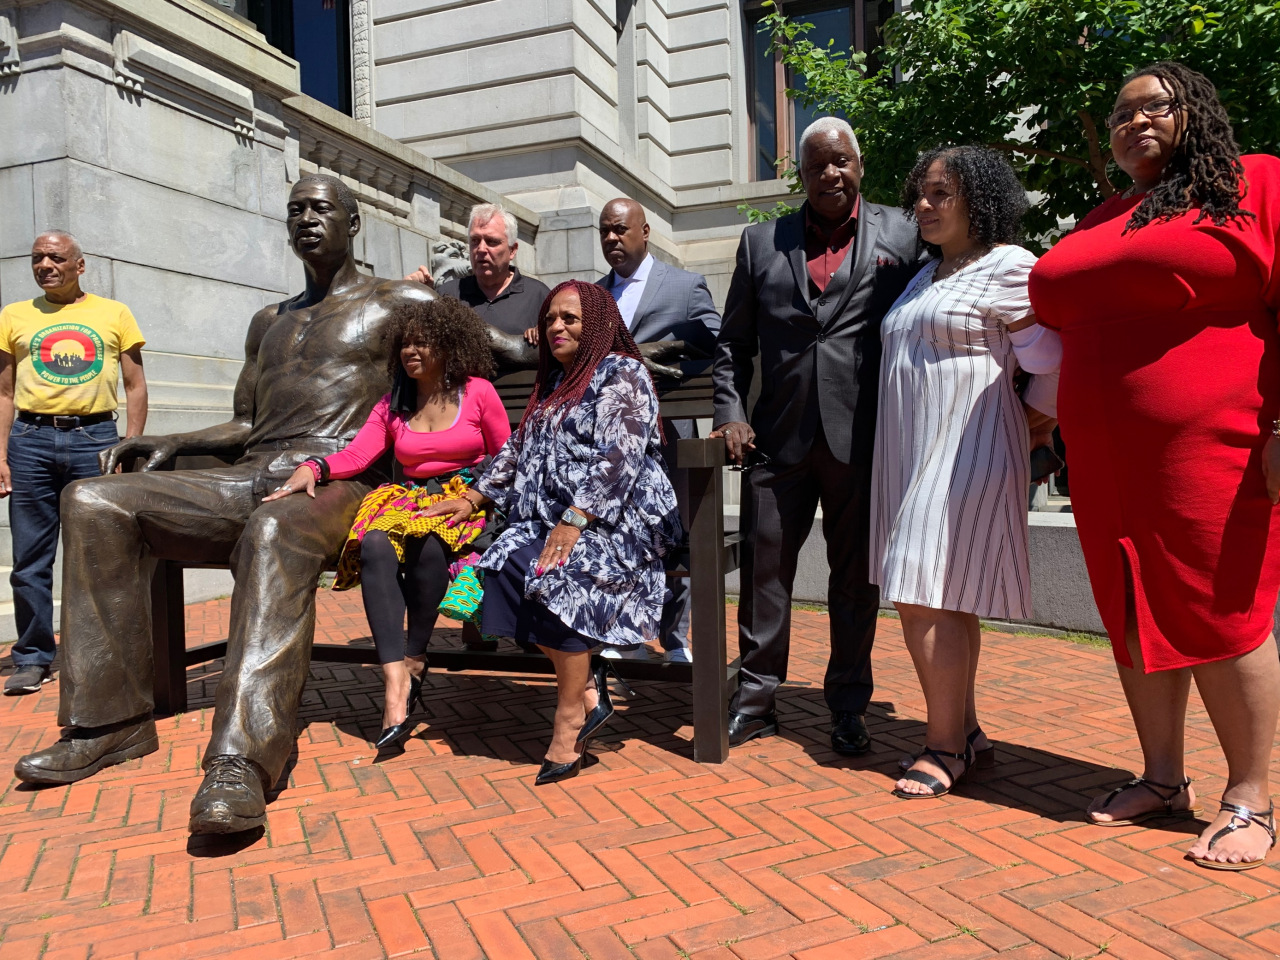 Newark pays tribute to George Floyd with 700-pound bronze statue